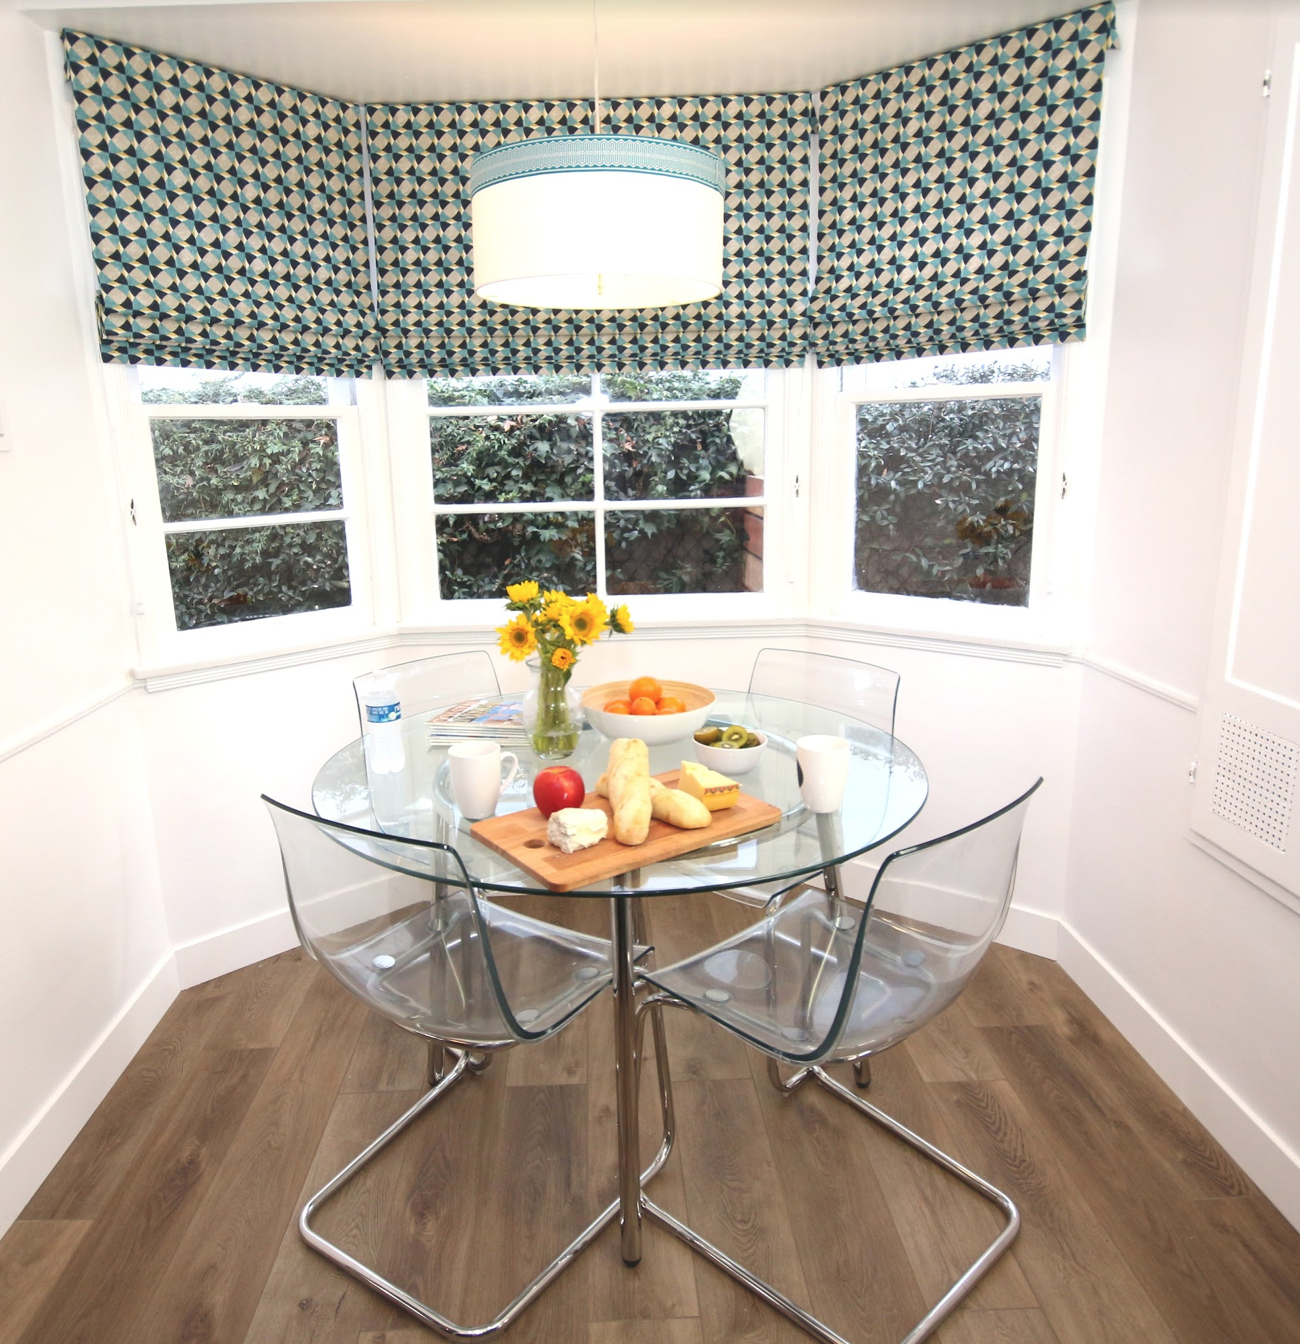 New Floors for Your Vacation Rental Property